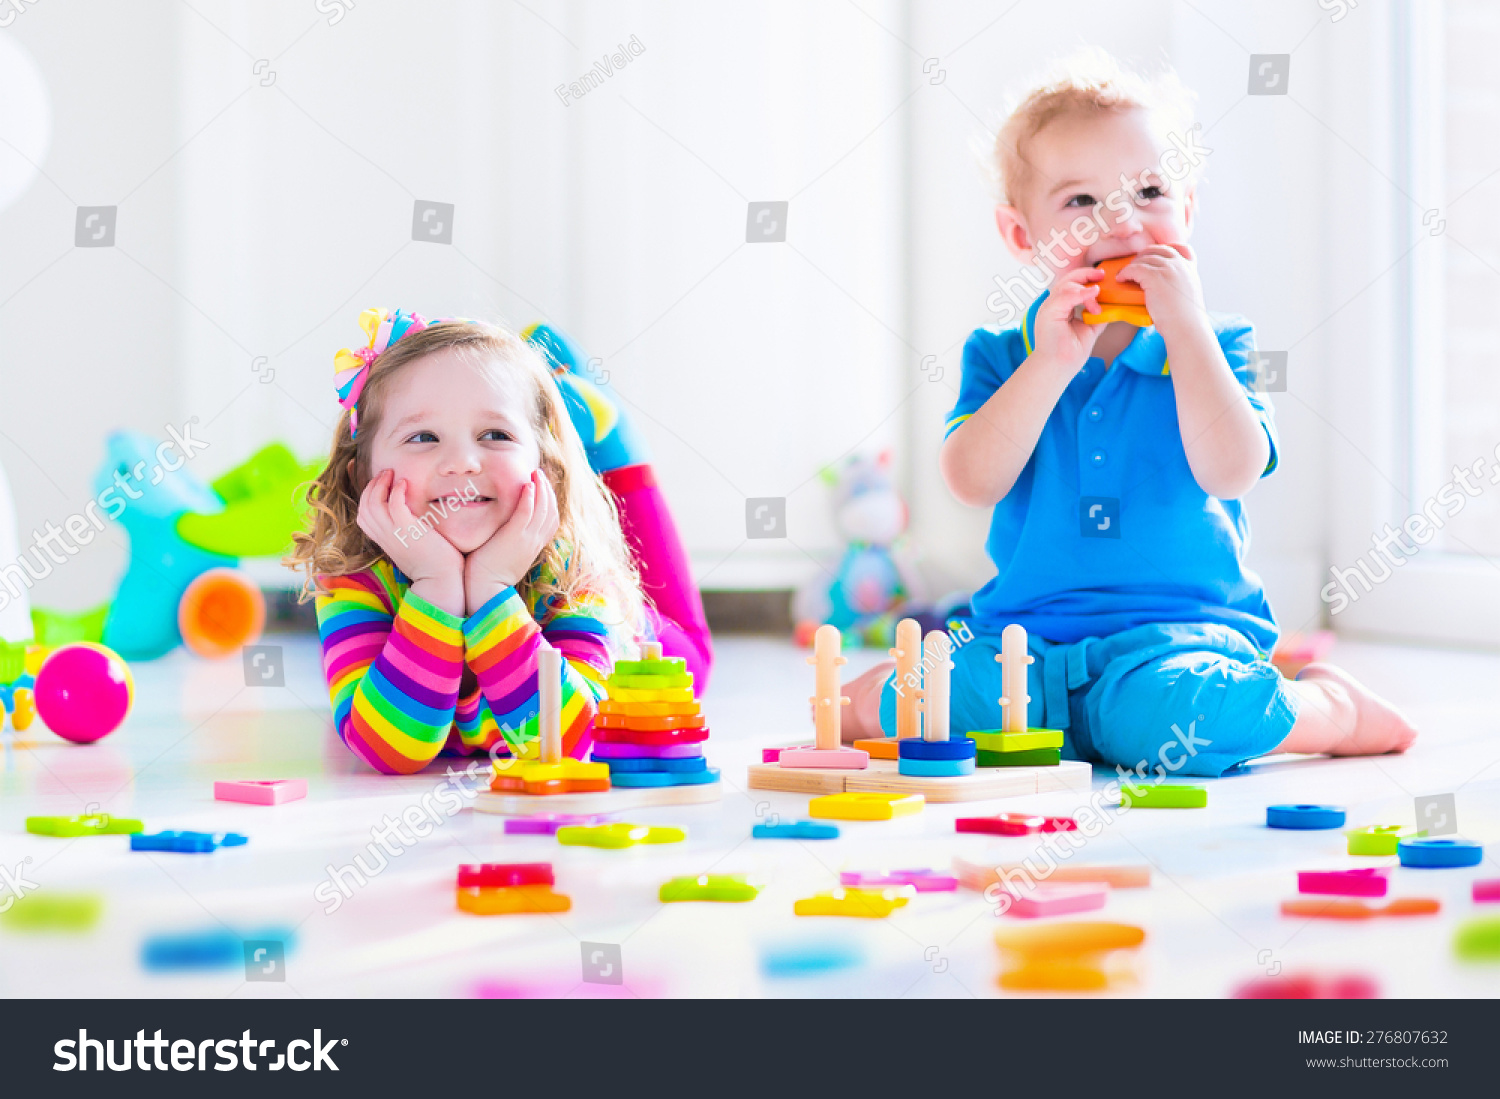 Toys For Boys Kindergarten : Kids playing wooden toys two children stock photo